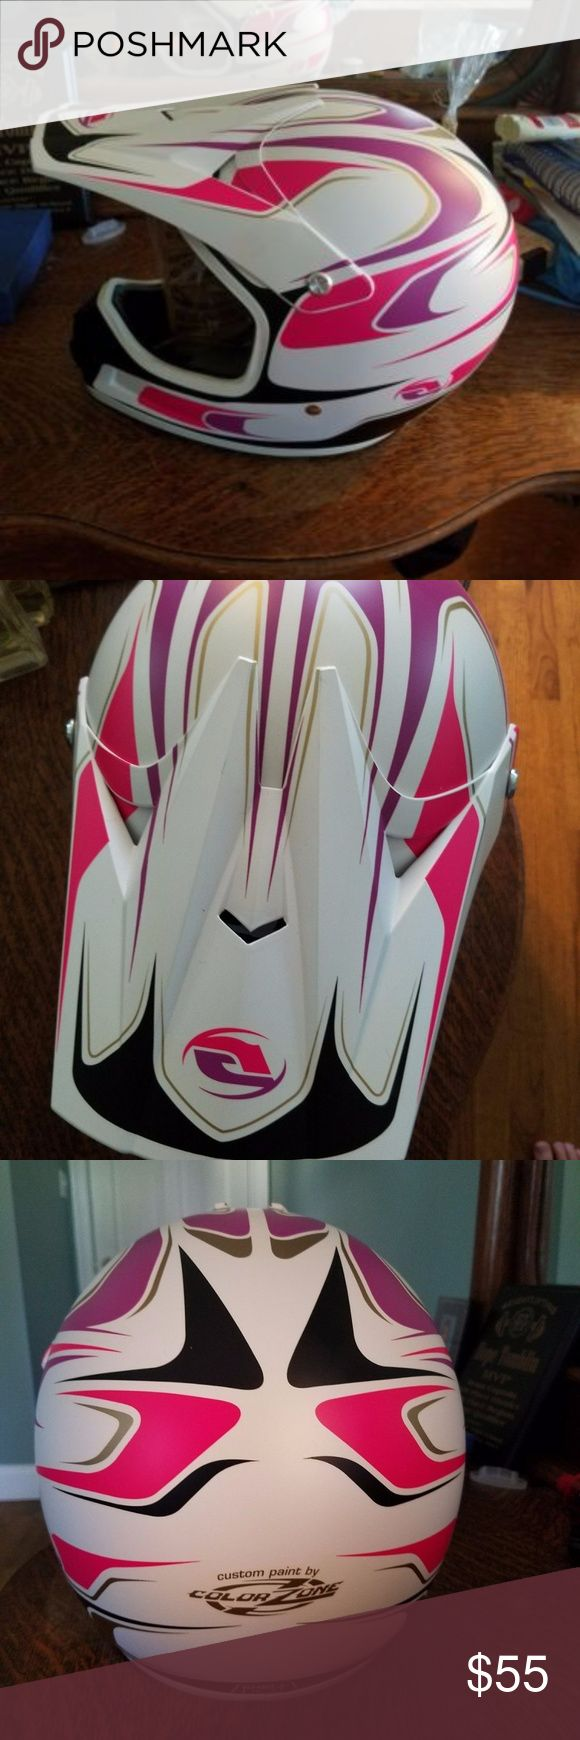 Answer Dirtbike Helmet - ATV Motorcycle Helmet NWT Brand new dirt bike or ATV helmet by Answer,  it is pink and white and is size small listed as 55-56cm. It has the price tag on the box at $105, but I'm going to sell it for much cheaper. Answer Other